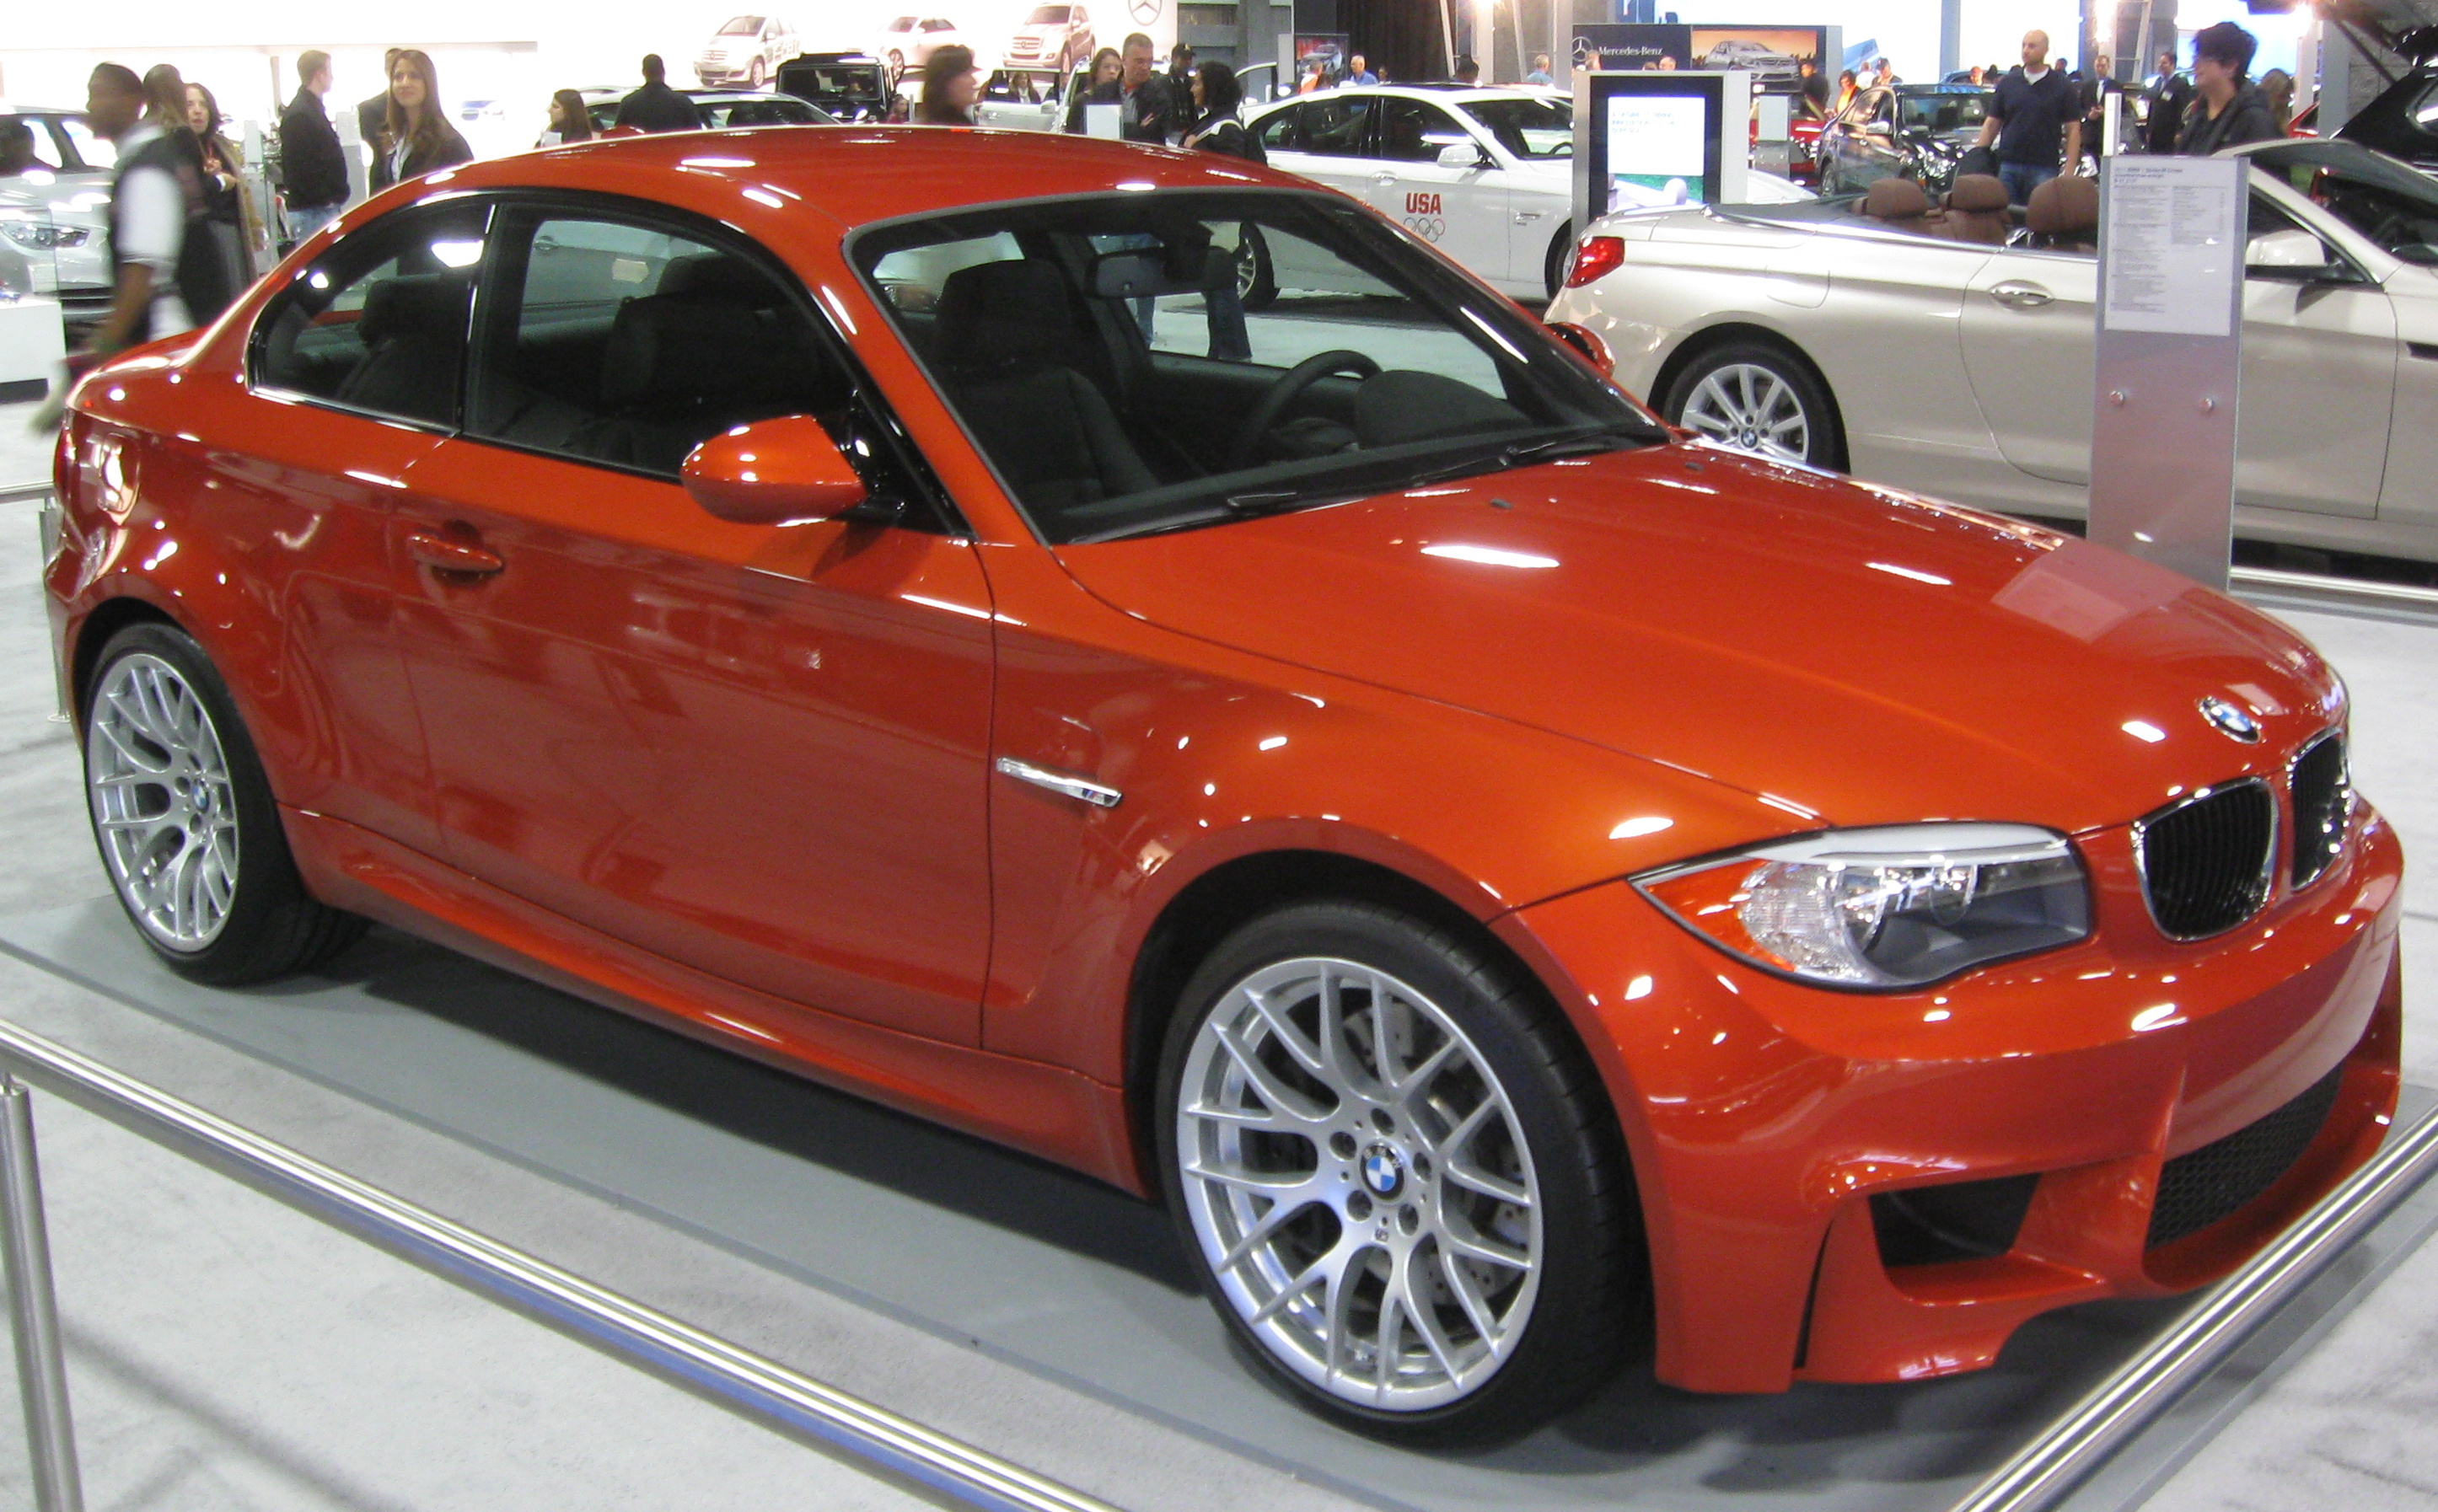 2008 Bmw 1er (e87) – pictures, information and specs - Auto-Database.com